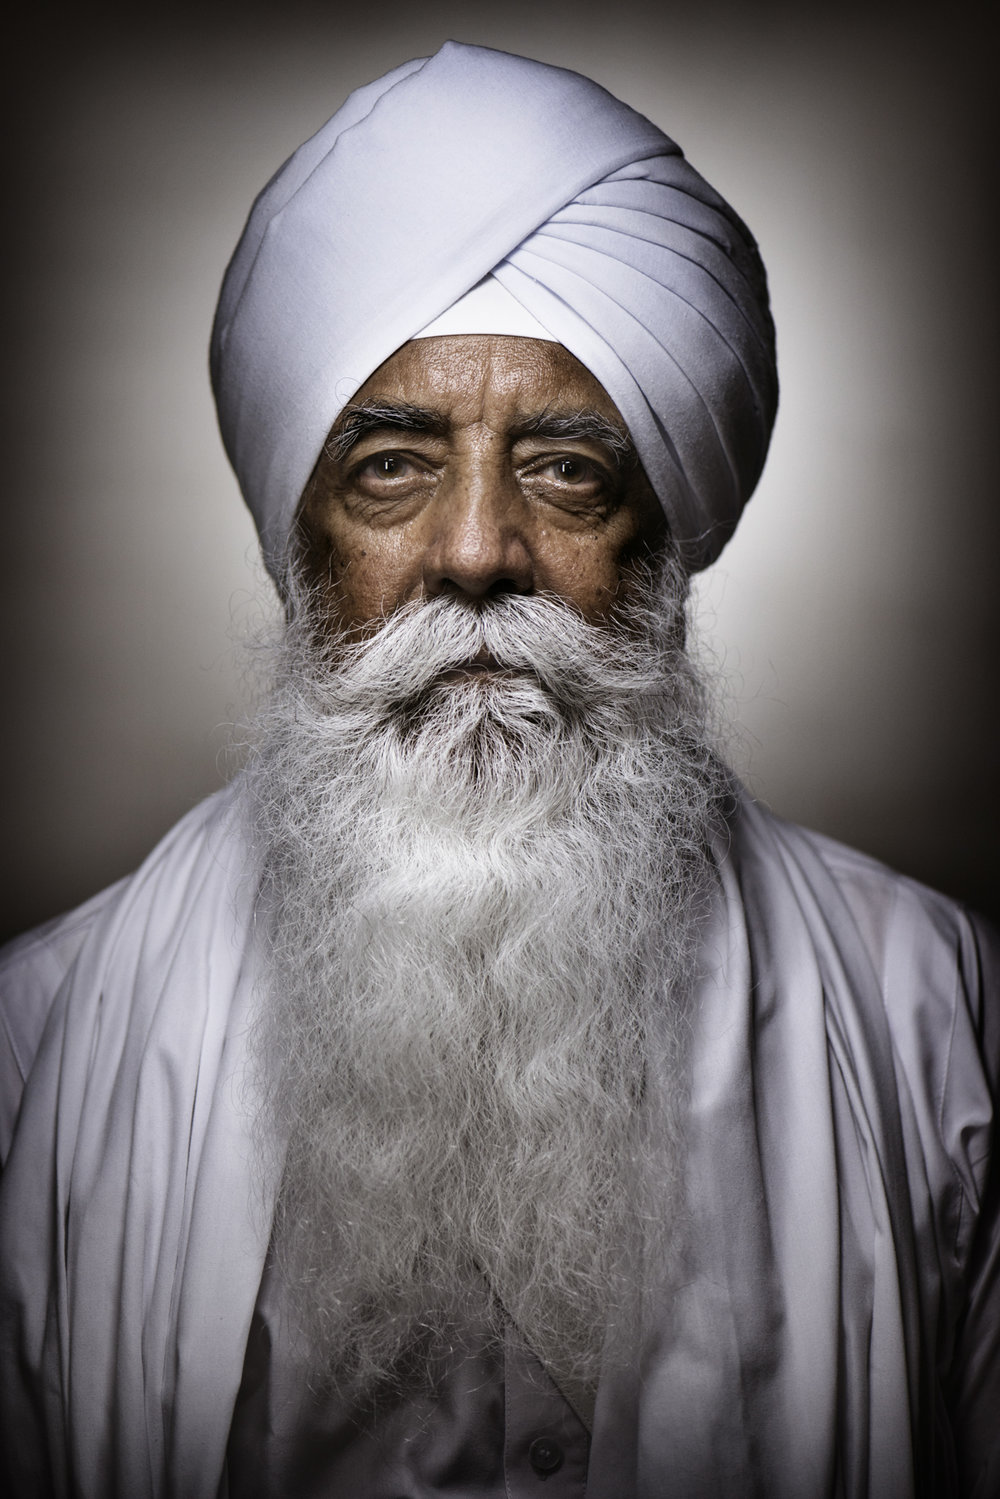 """Bhai Sahib Bhai Mohinder SinghGuru Nanak Nishkam Sewak JathaUnited KingdomWorld religious leaders gathered in Rome, Italy, to take part to the 27th inter-religious peace summit hosted by the Community of Sant'Egidio, an Italian based Catholic lay association with a network of members spreading over 60 countries.The summit, held from September 29 through October 1, this year reflected on """"The Courage to Hope"""", with 32 panel discussions on topics including the crisis in Syria, inter-religious dialogue, ecumenism, immigration, urban societies and violence on women.Sant'Egidio has held the summit every year in several international locations since October 1986, as an annual follow up to the inter-religious day of prayer organised by Pope John Paul II in Assisi, hometown of Saint Francis and a symbol of peace.Among the 400 participants hailing from 60 different countries were religious leaders (representatives of the Catholic, Orthodox, Anglican and Protestant churches, Muslim and Jewish leaders, delegates from the other major religions), as well as key figures of the European and international political and cultural scene."""